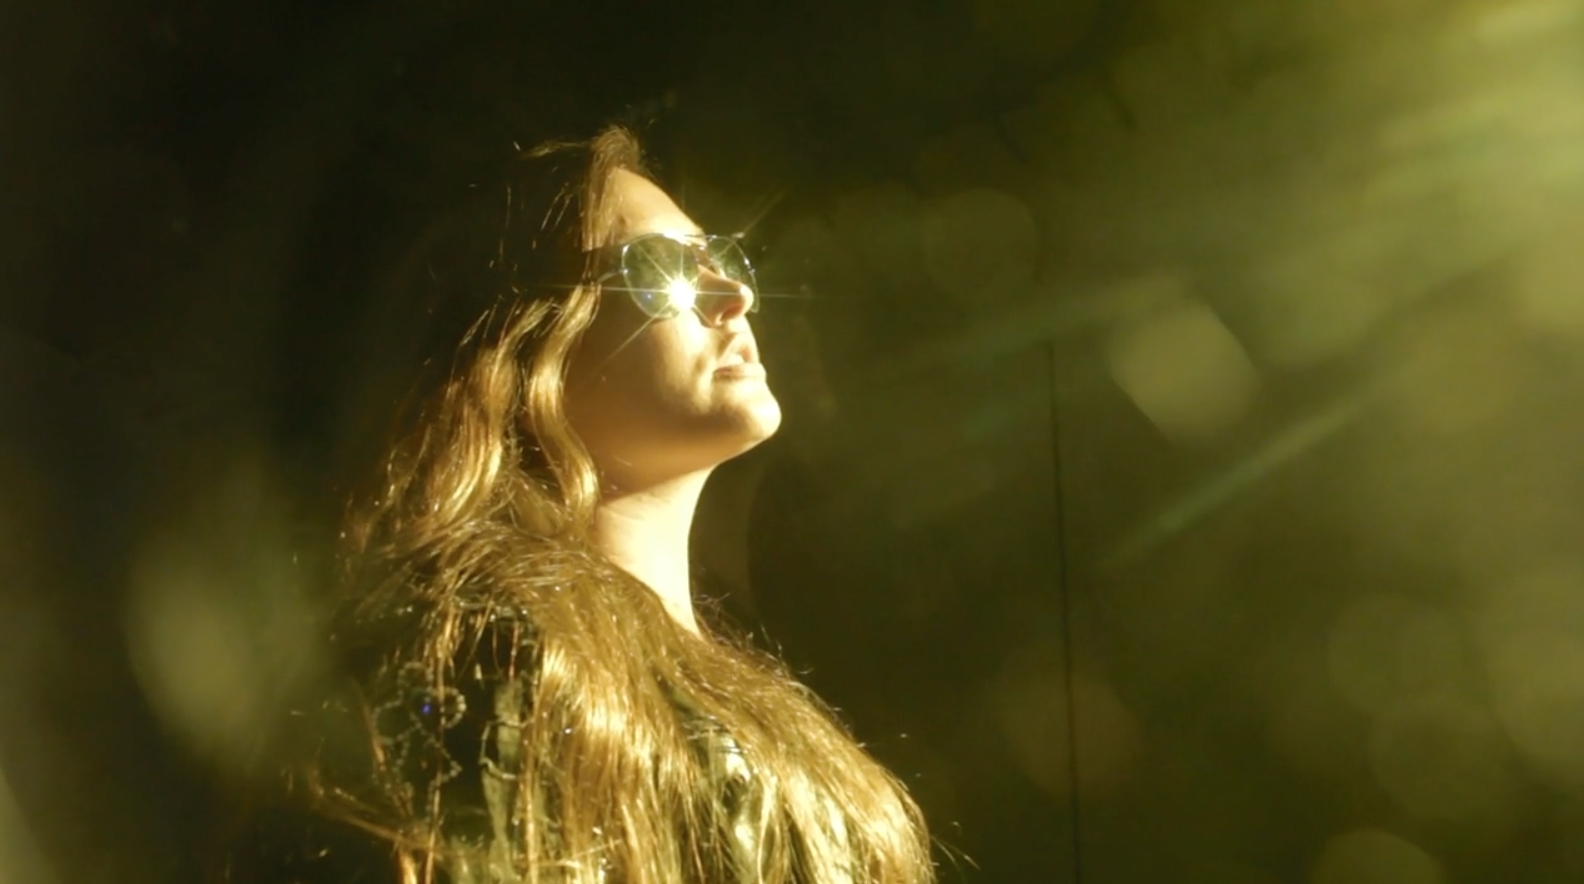 """Video Still from """"Shadow of a Woman"""", vocals and performance of Gold Dust Woman by Michelle Tompkins (pictured)."""